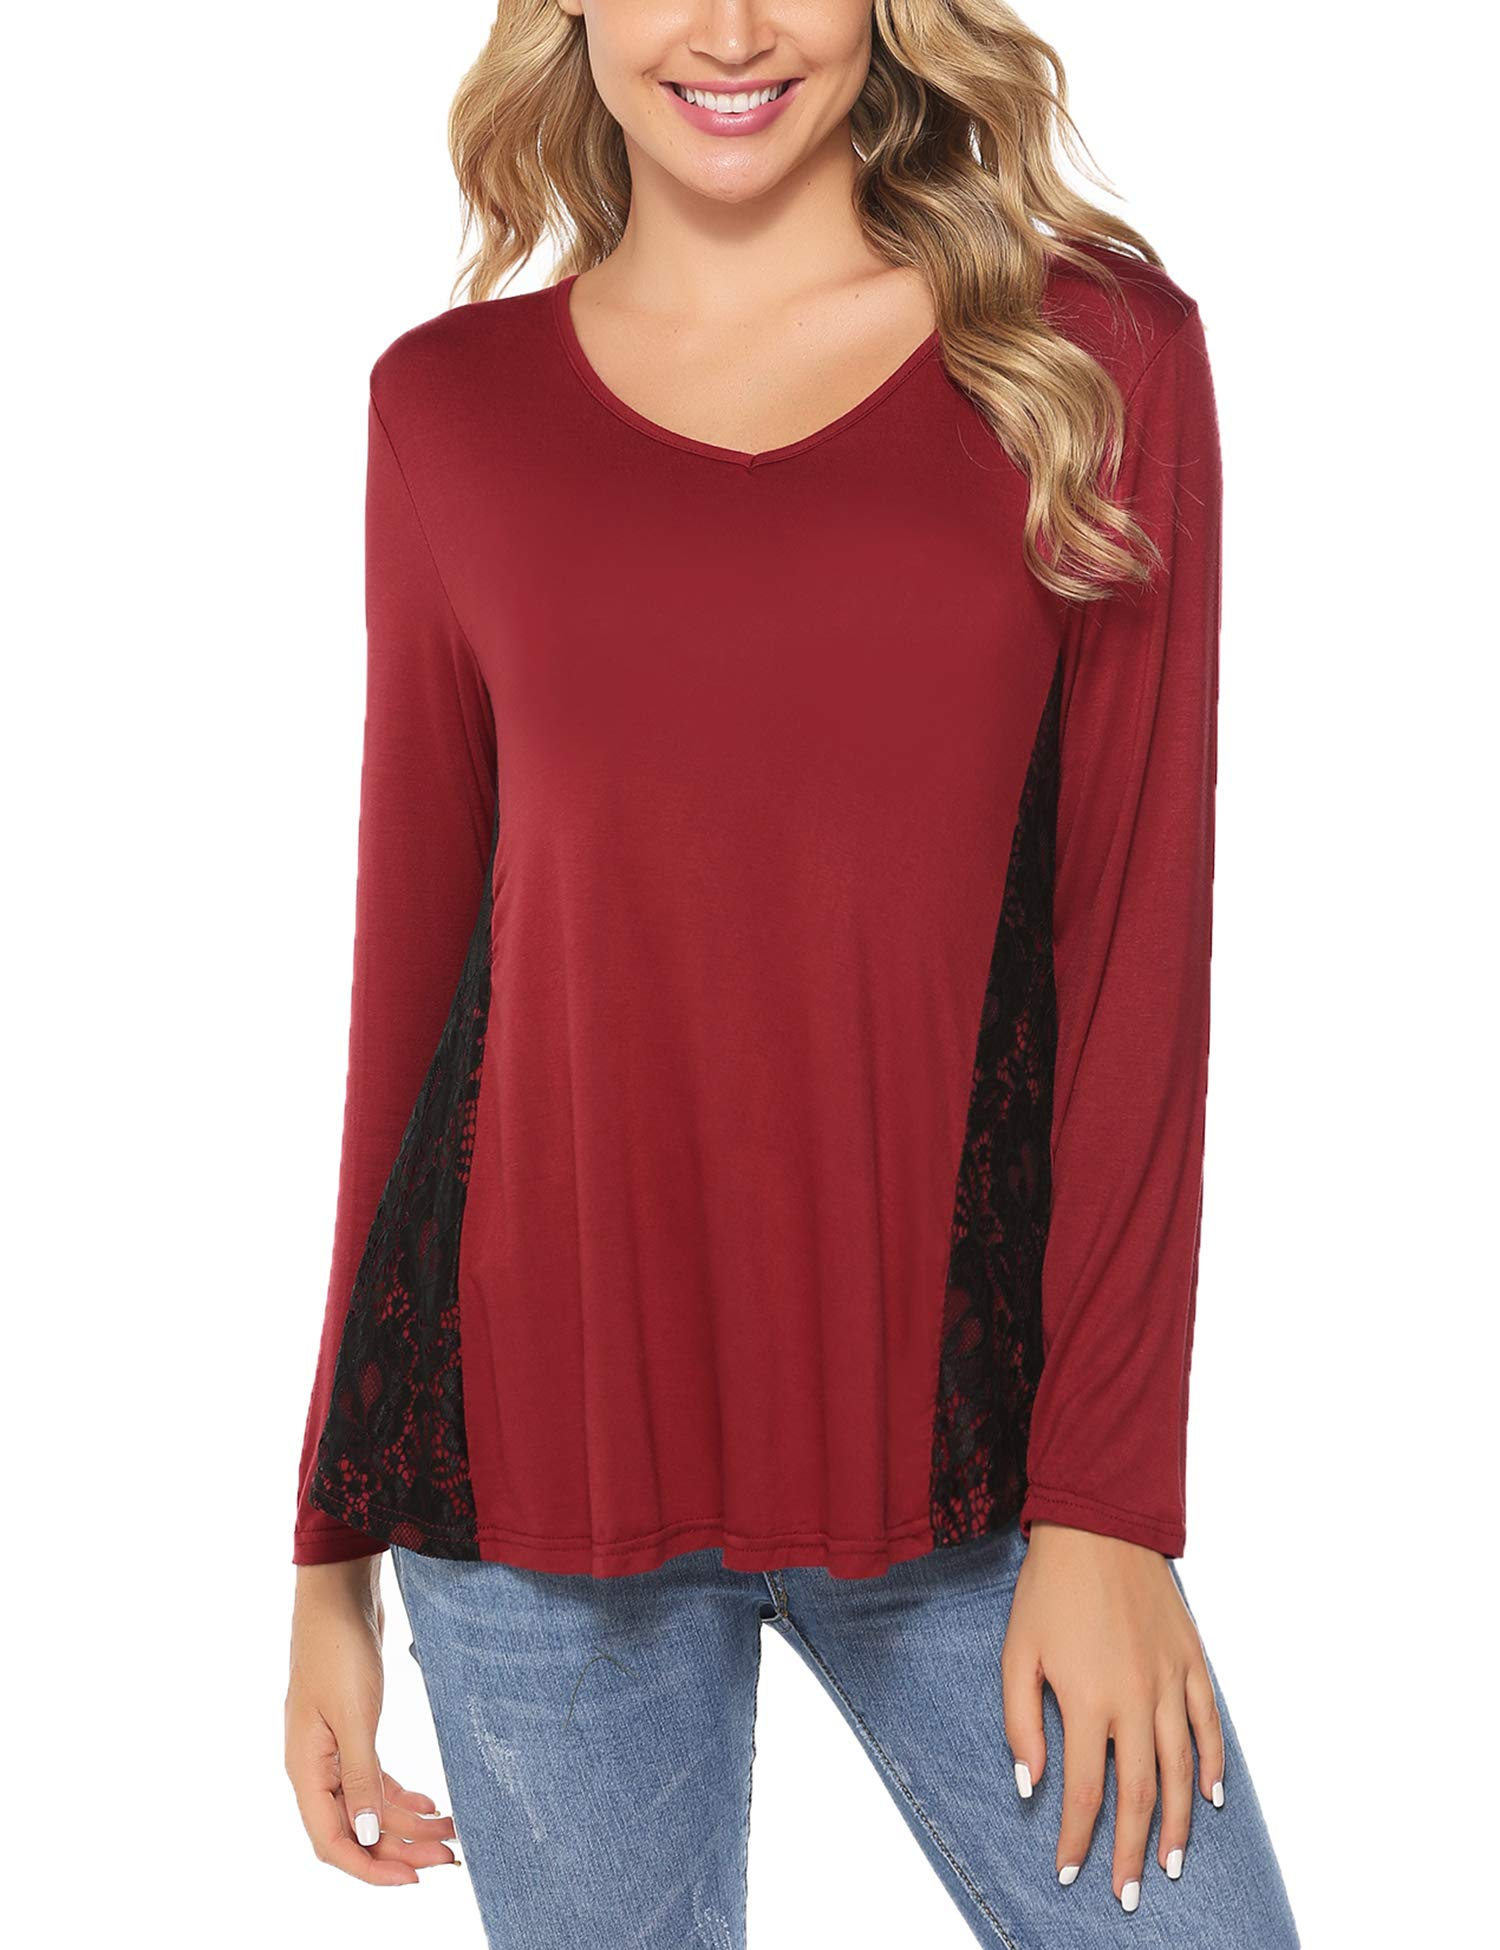 Abollria Women Lace Tunic Top Long Sleeve Flare T Shirt for Leggings